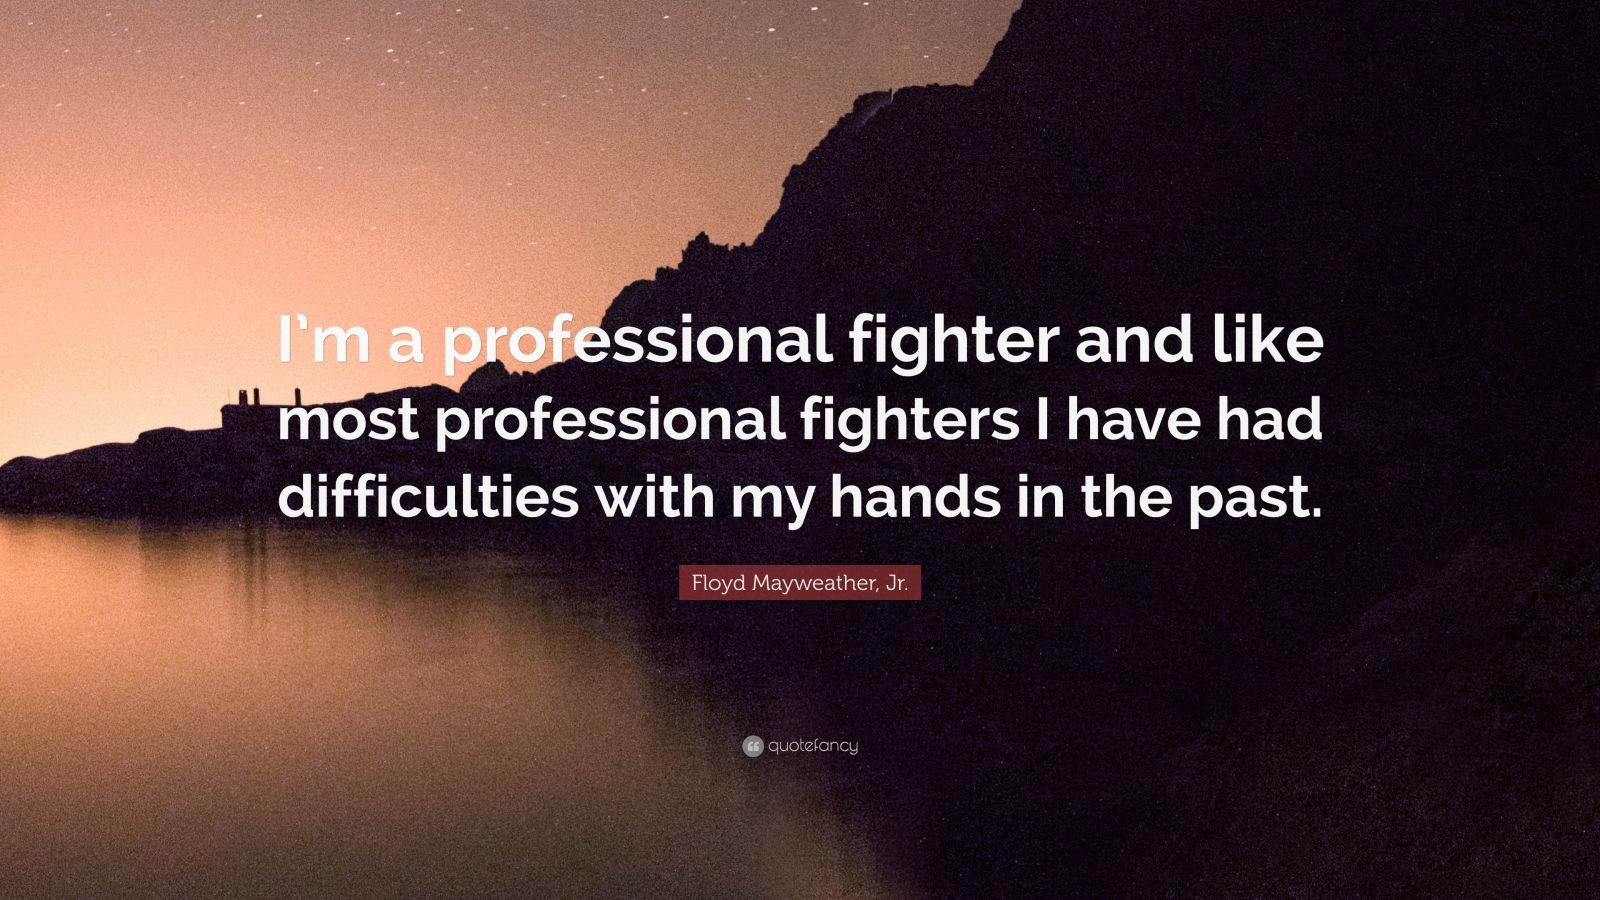 """Floyd Mayweather, Jr. Quote: """"I'm a professional fighter and like most professional fighters I have had difficulties with my hands in the past."""""""